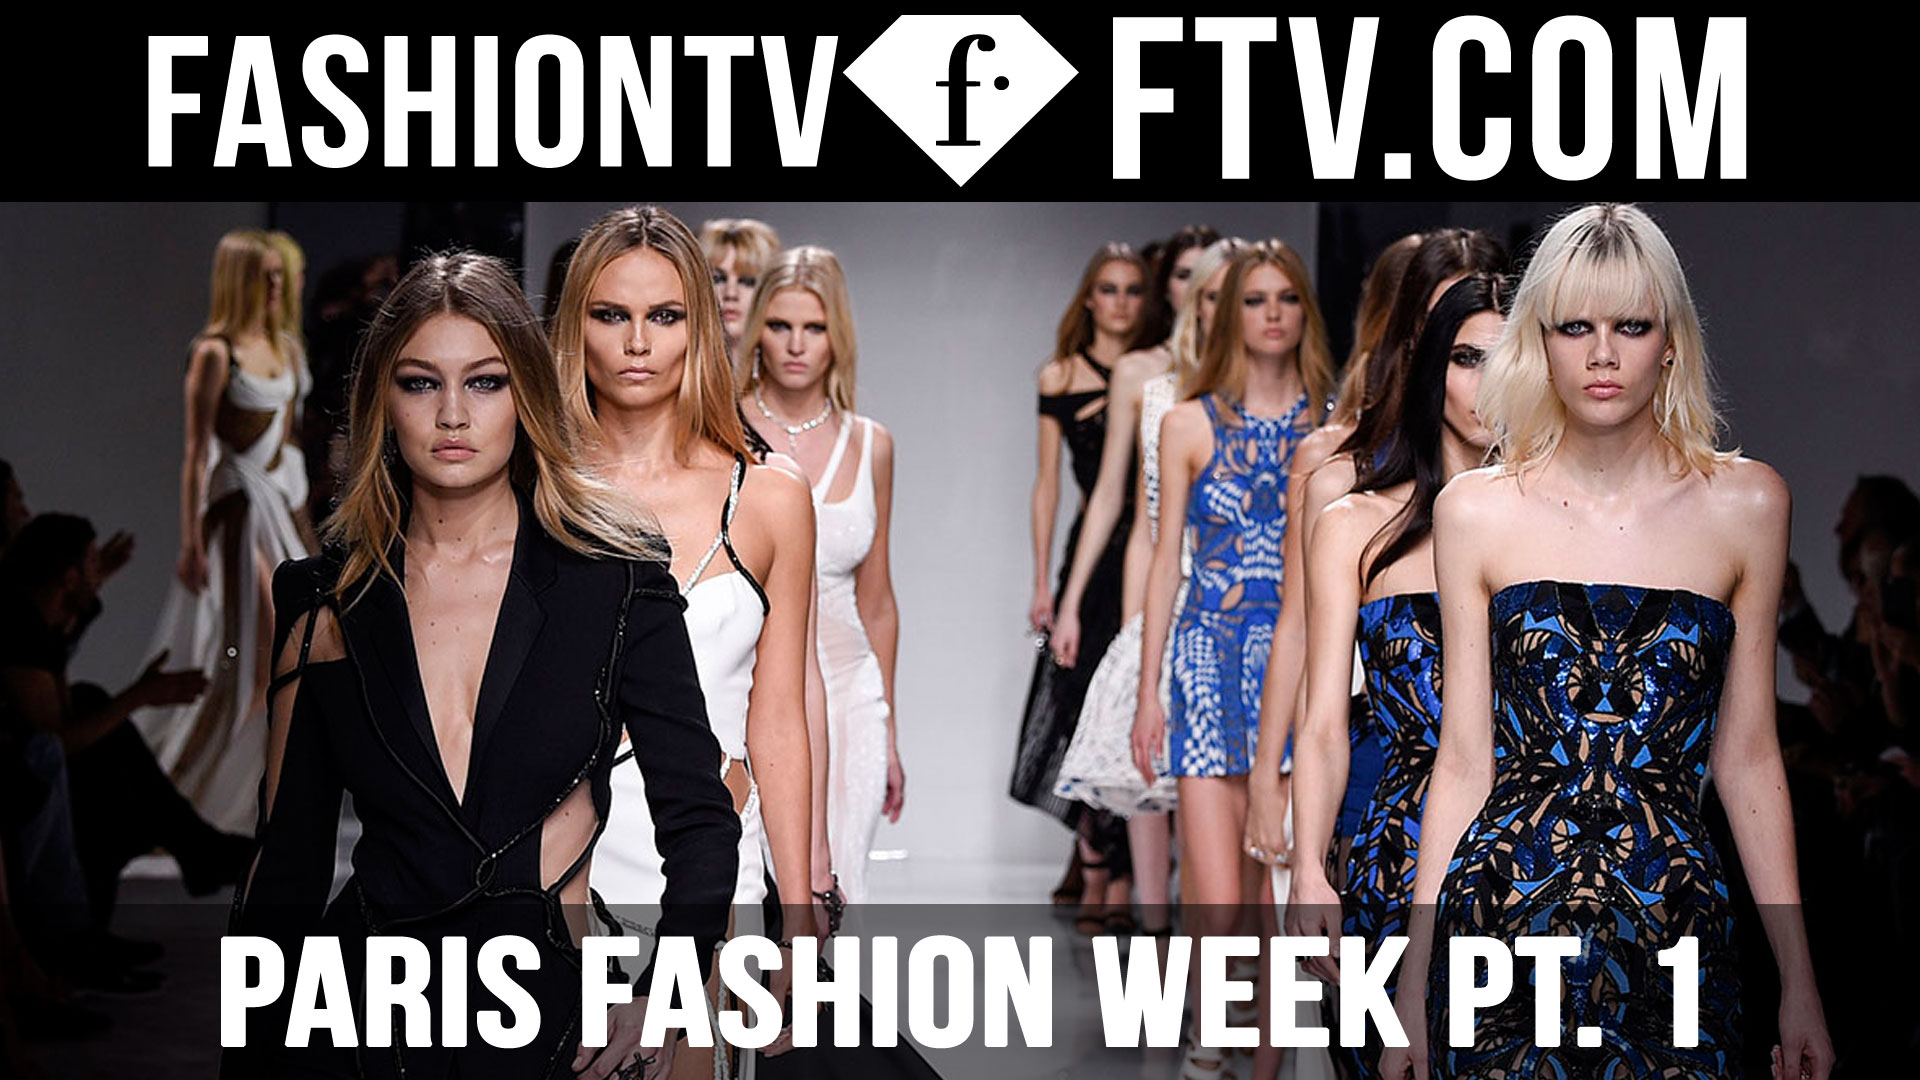 Paris Fashion Week Fall/Winter 2016-17 pt. 1 | FTV.com